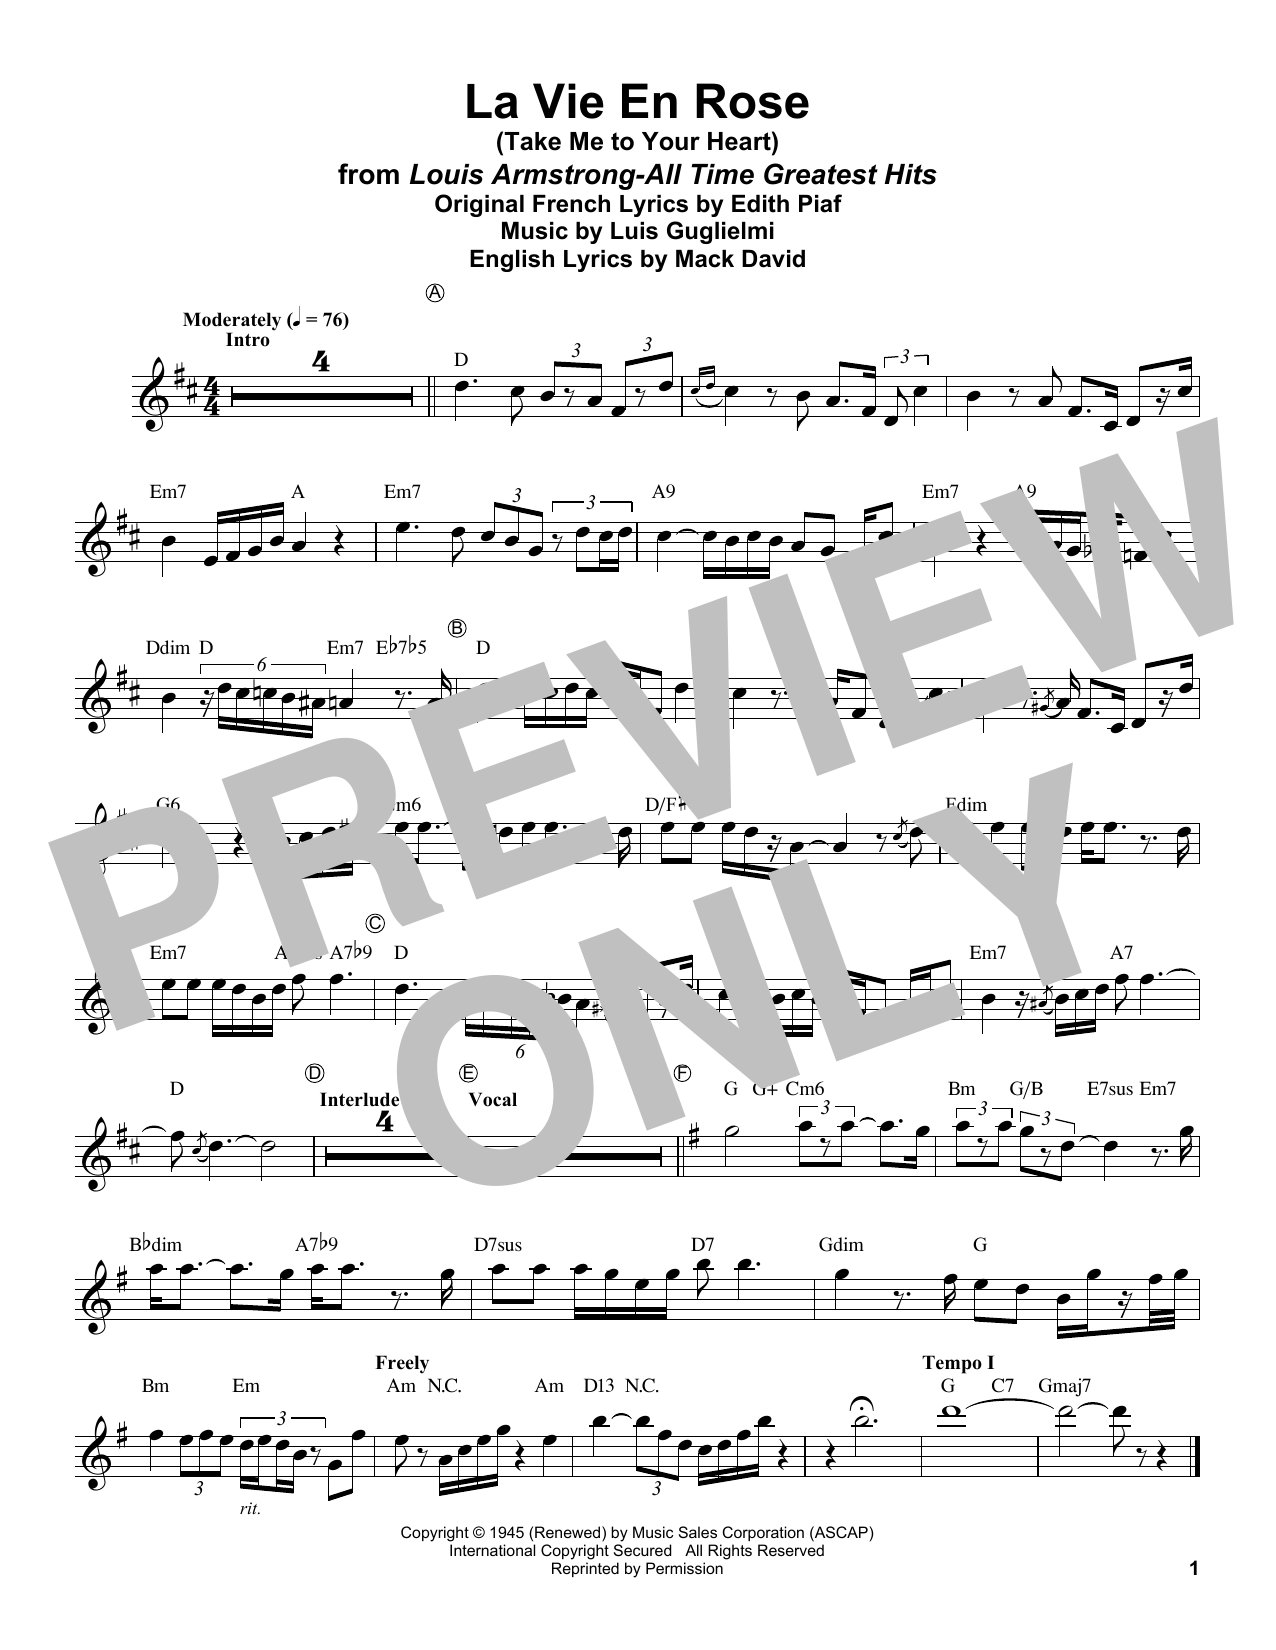 Sheet Music Digital Files To Print Licensed Edith Piaf Digital